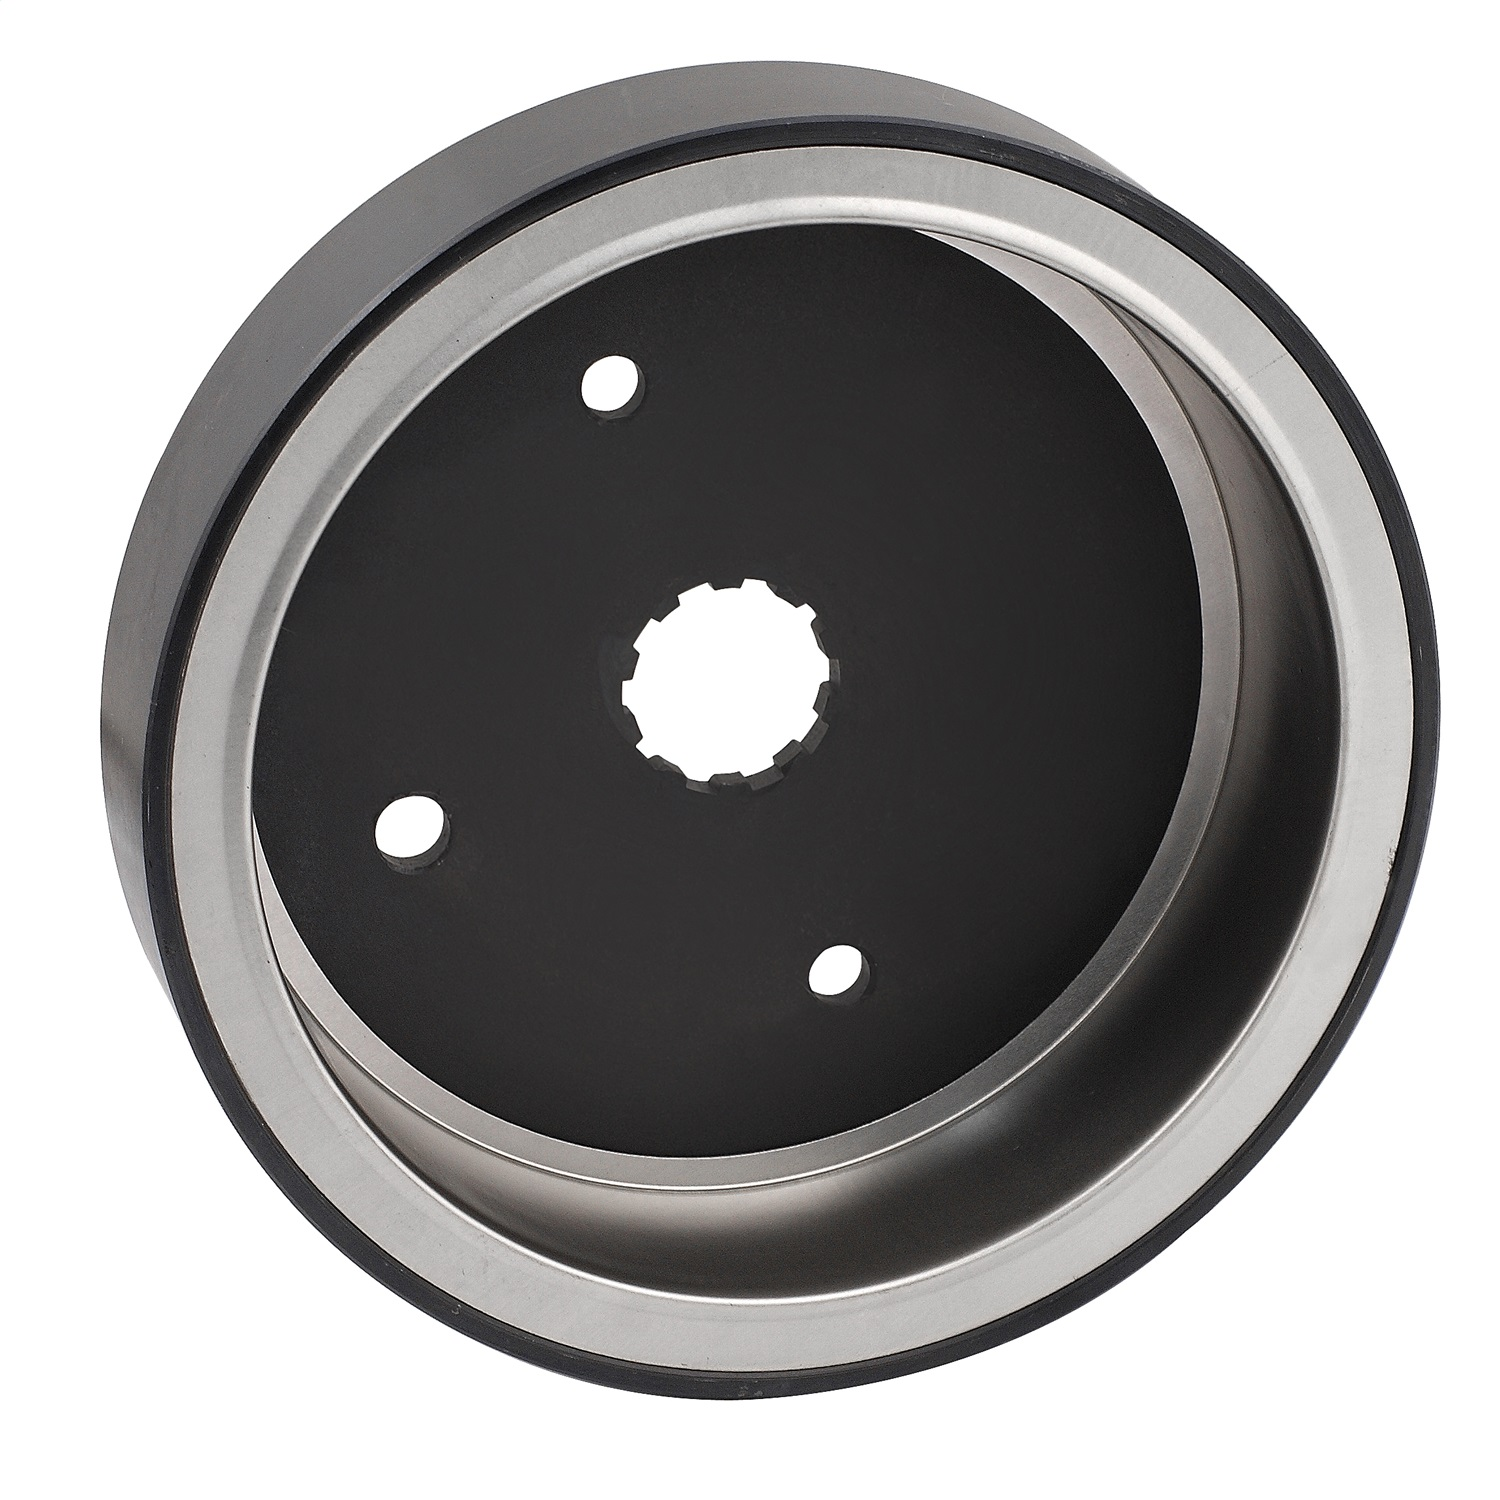 ACCEL 152201 ROTOR,38A 3 PHASE